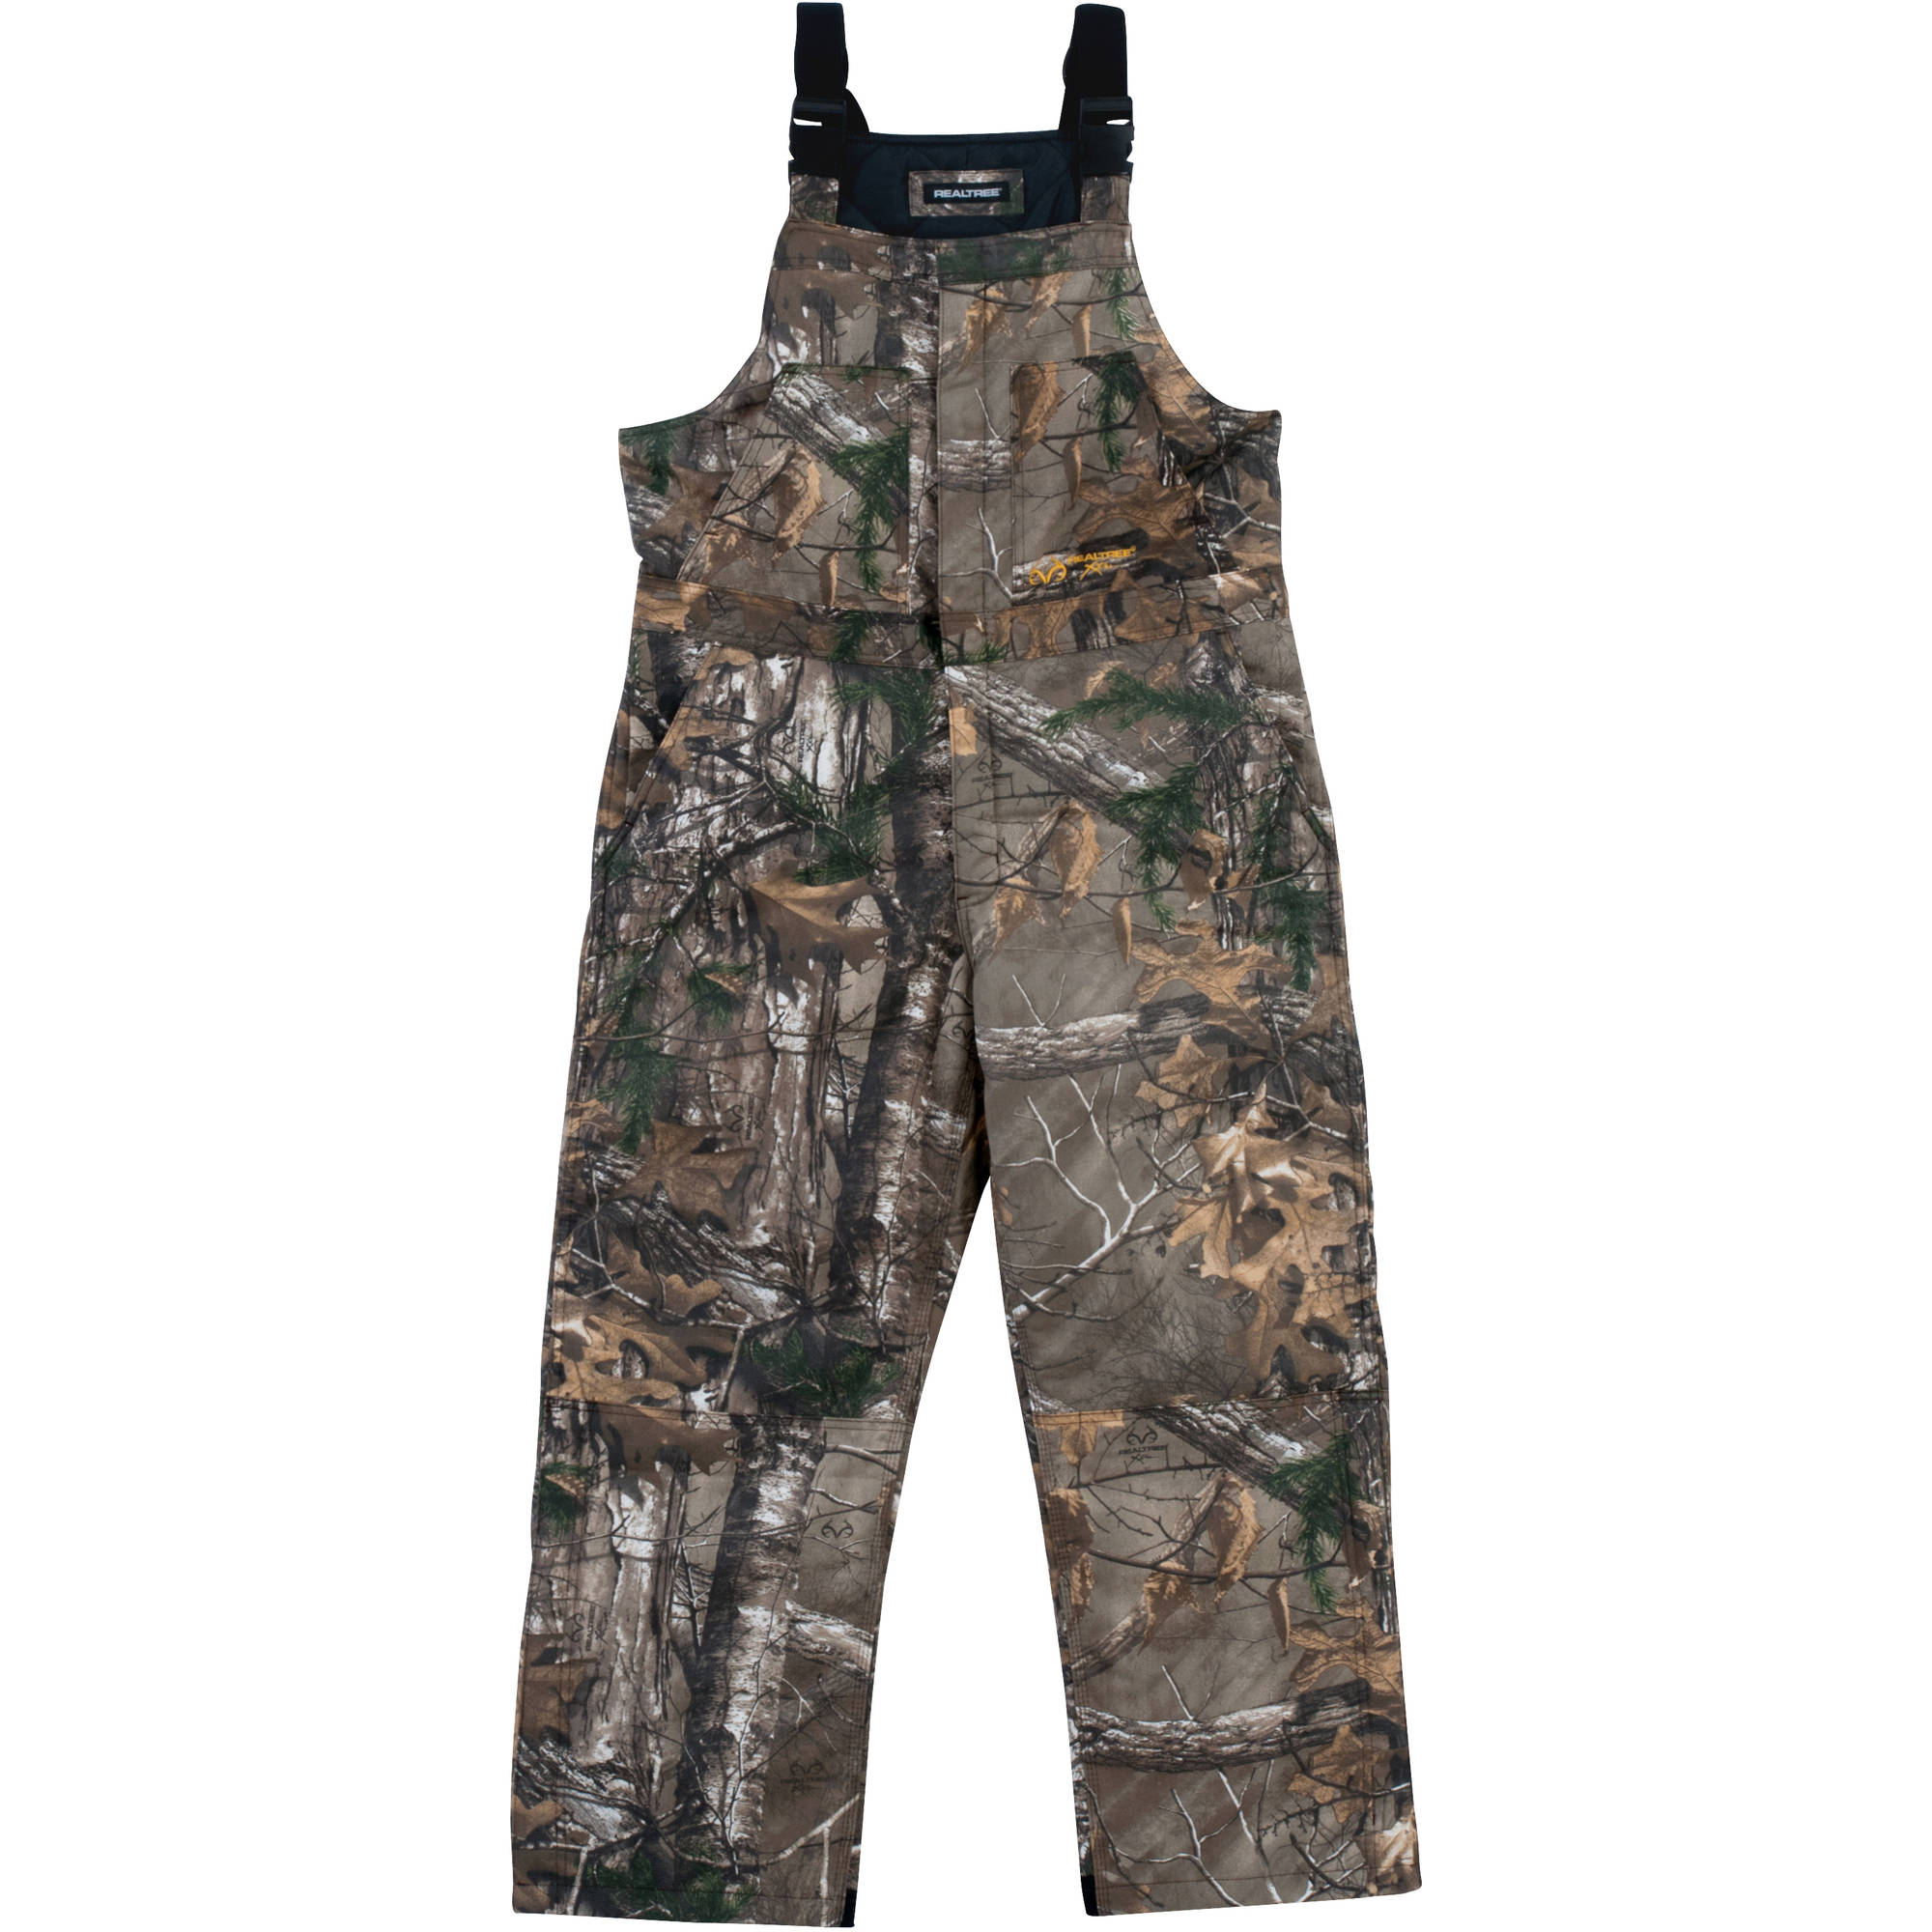 6adadc8a157c2 Realtree - Men's Insulated Bib, Realtree Xtra - Walmart.com